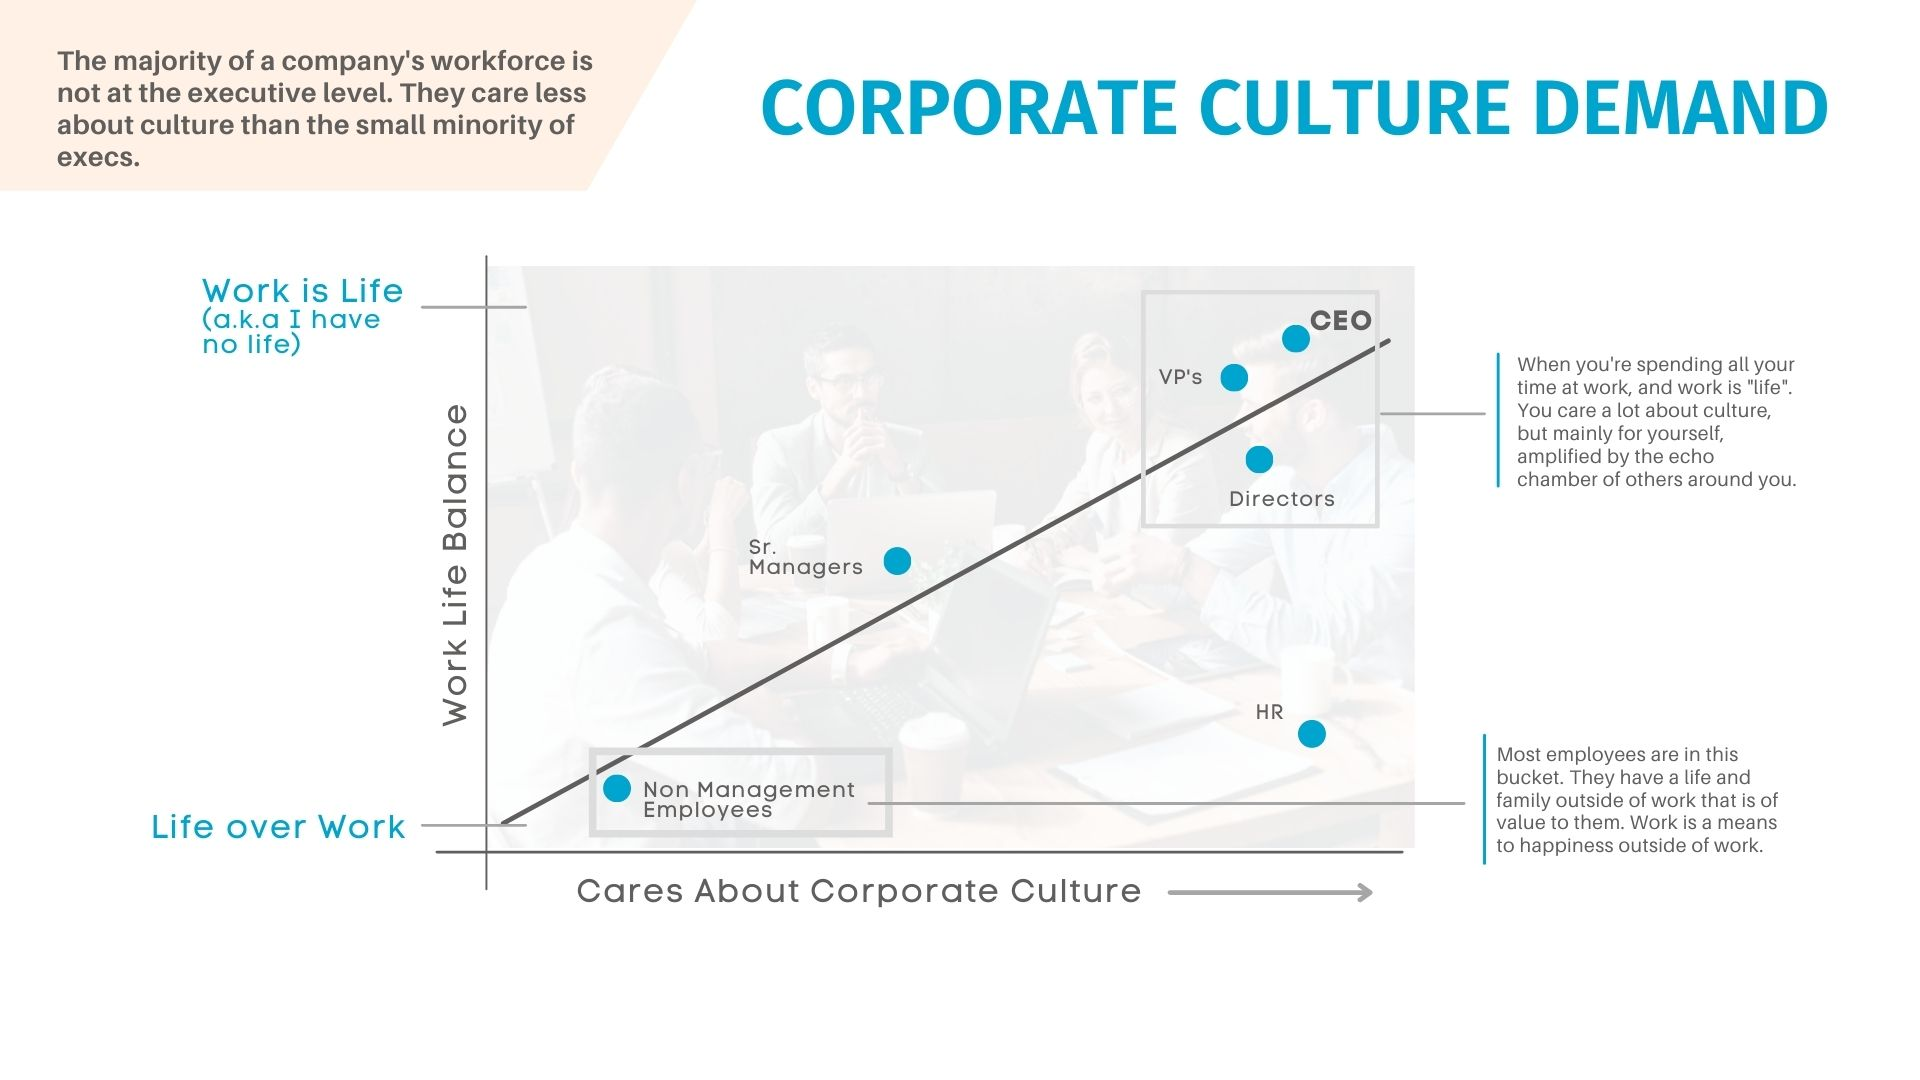 Work From Home and corporate culture demand